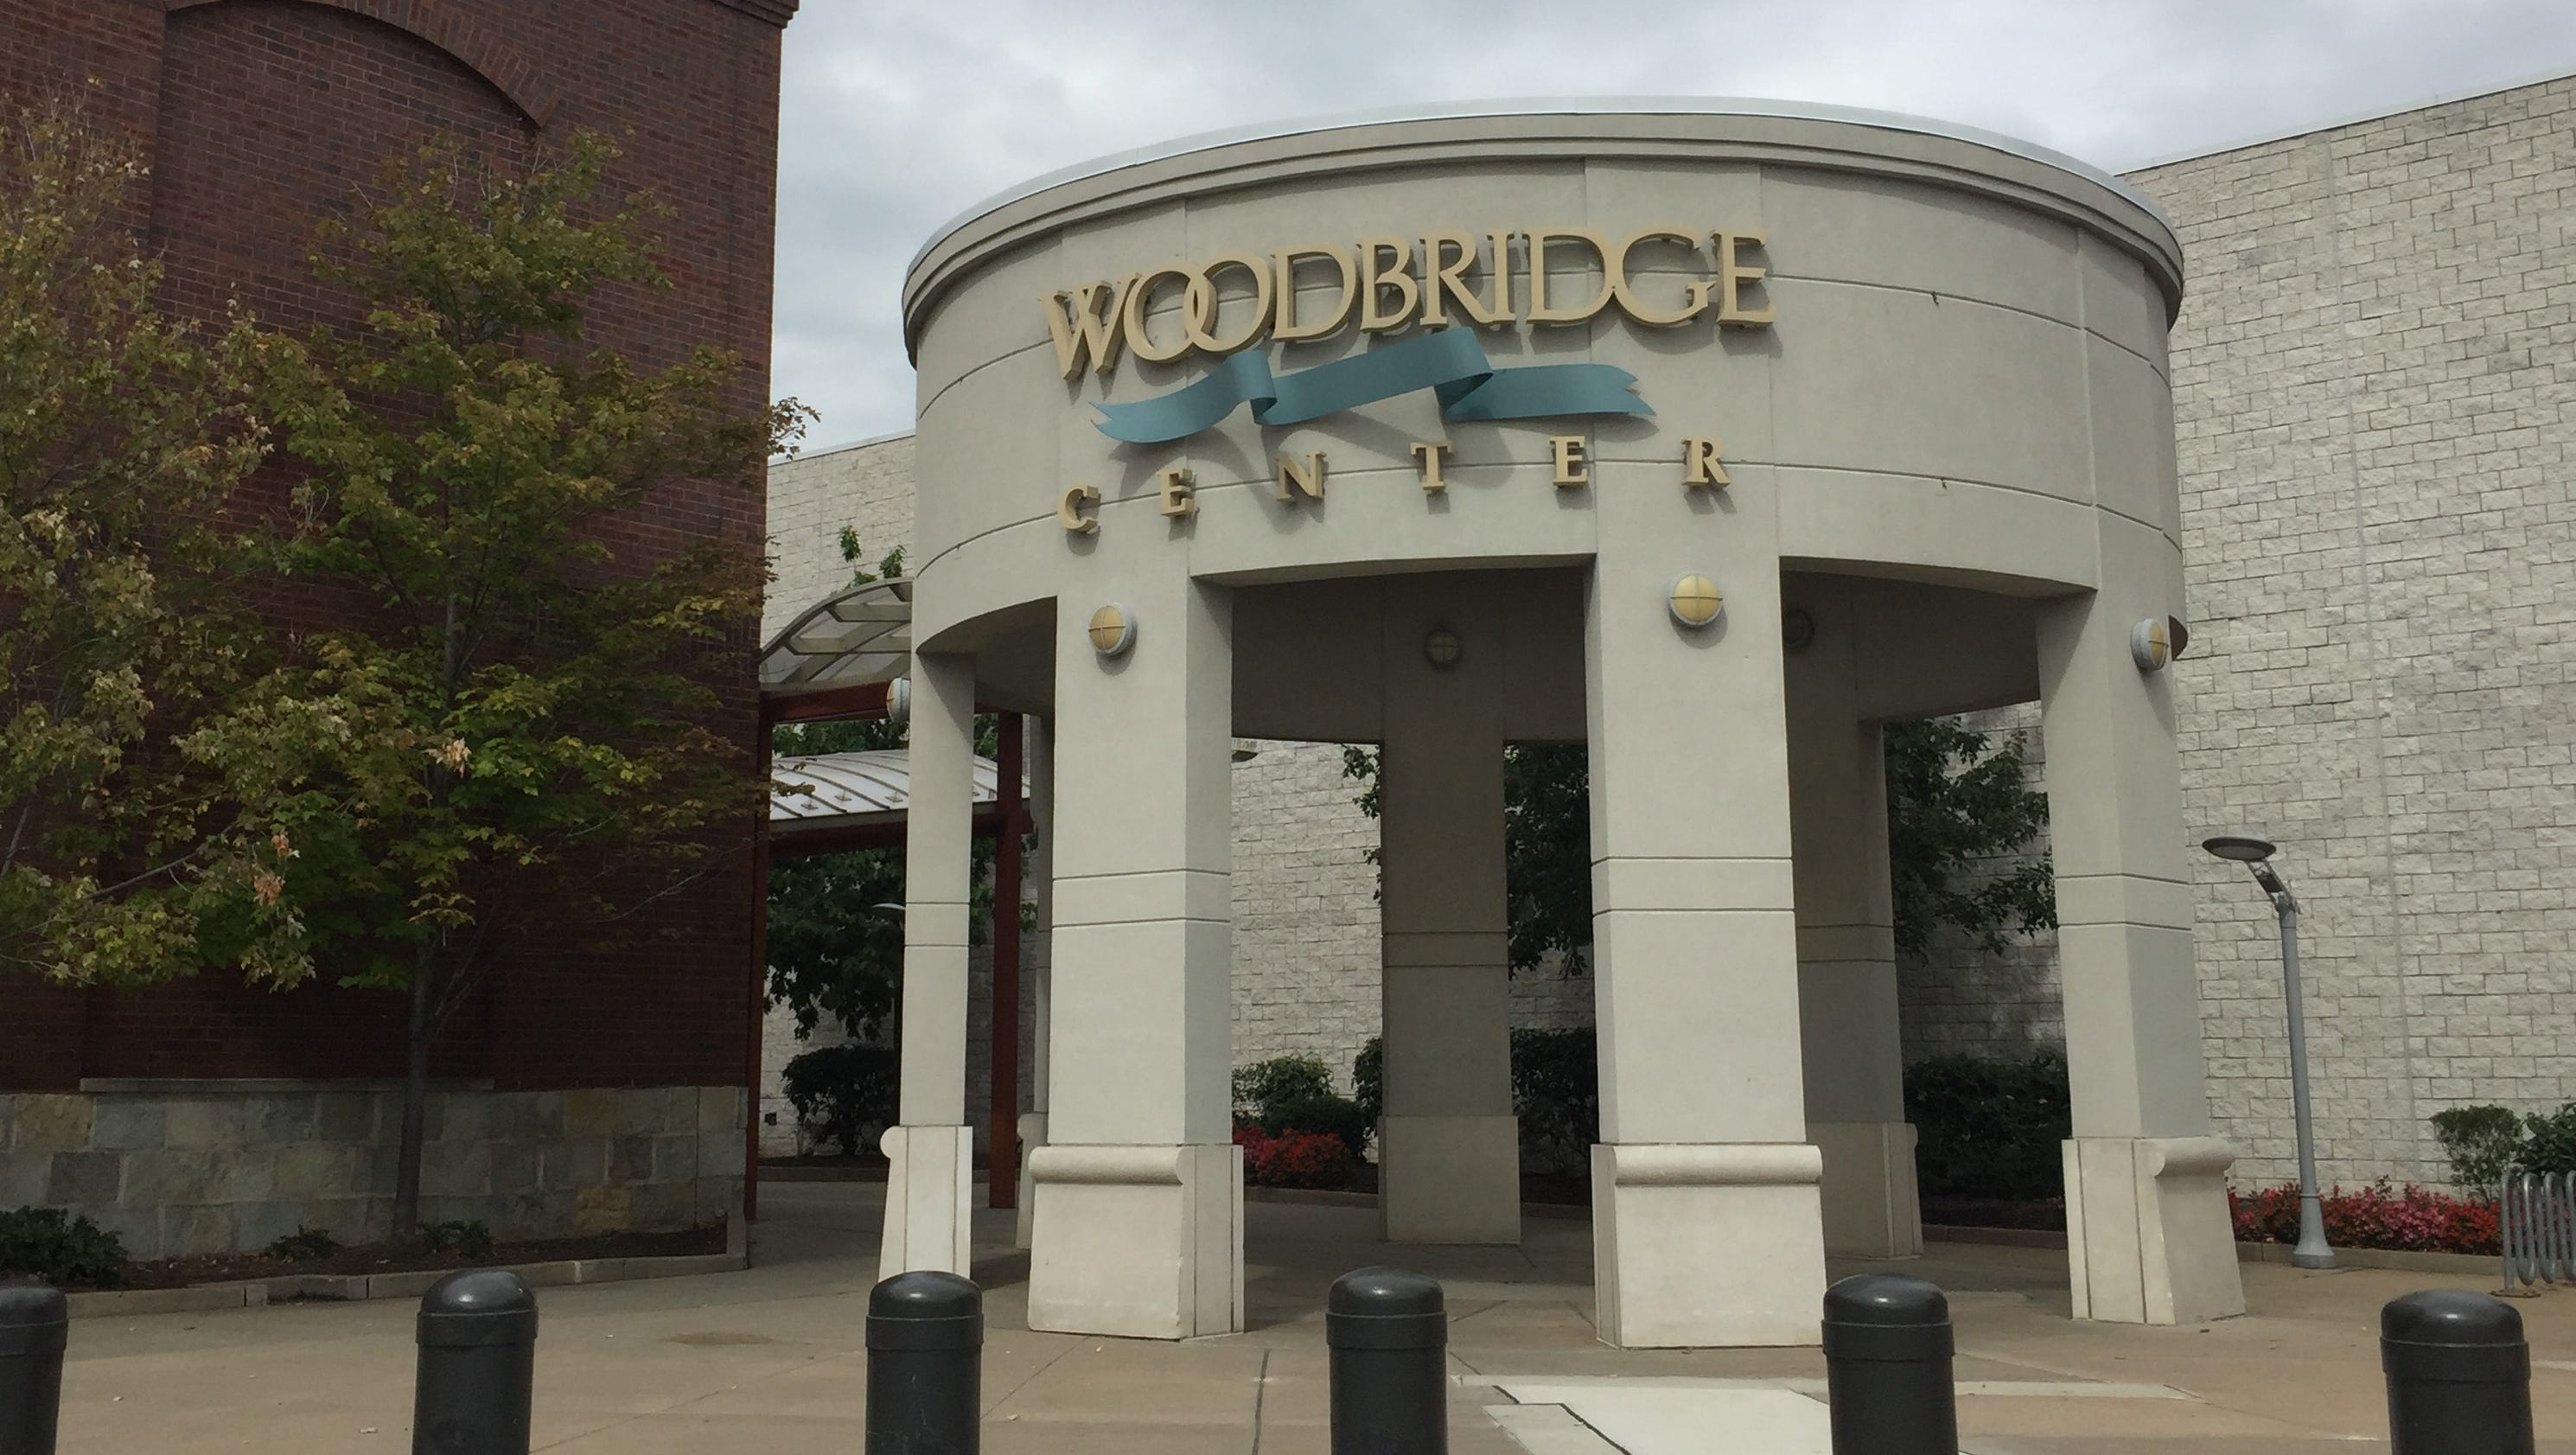 woodbridge chatrooms 100% free woodbridge chat rooms at mingle2com join the hottest woodbridge chatrooms online mingle2's woodbridge chat rooms are.